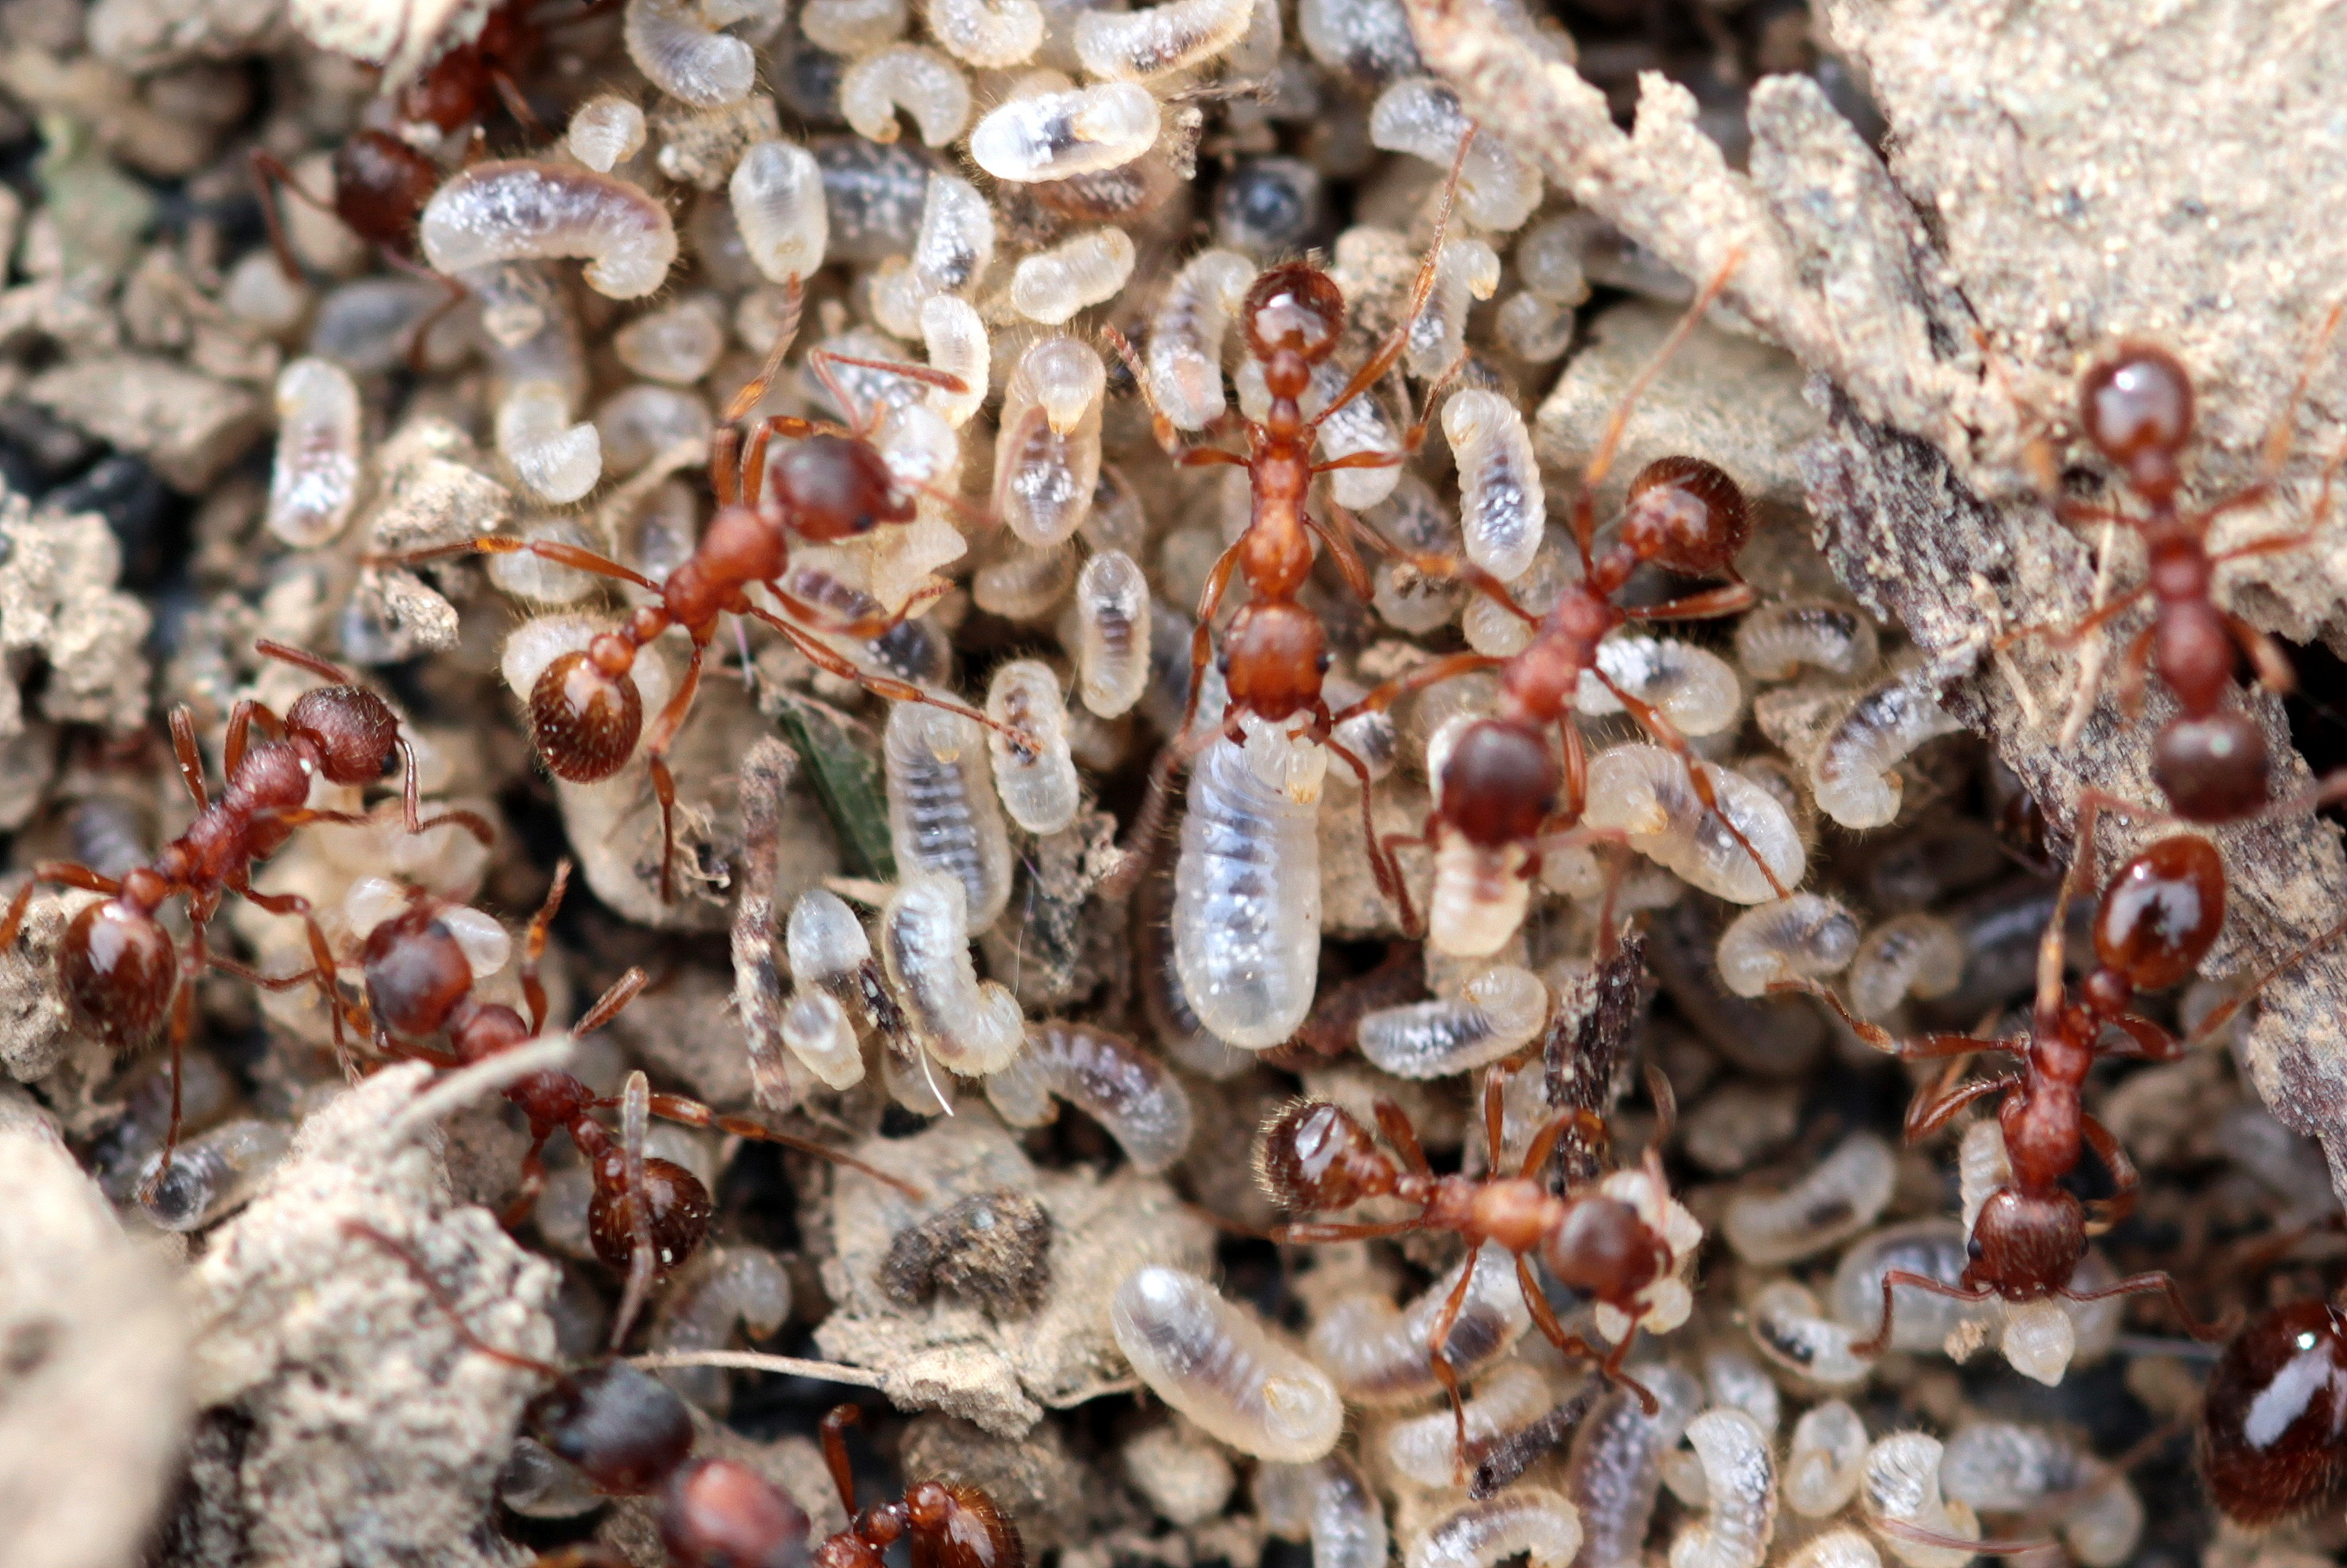 Red Garden Ant, Animal, Ant, Garden, Insect, HQ Photo